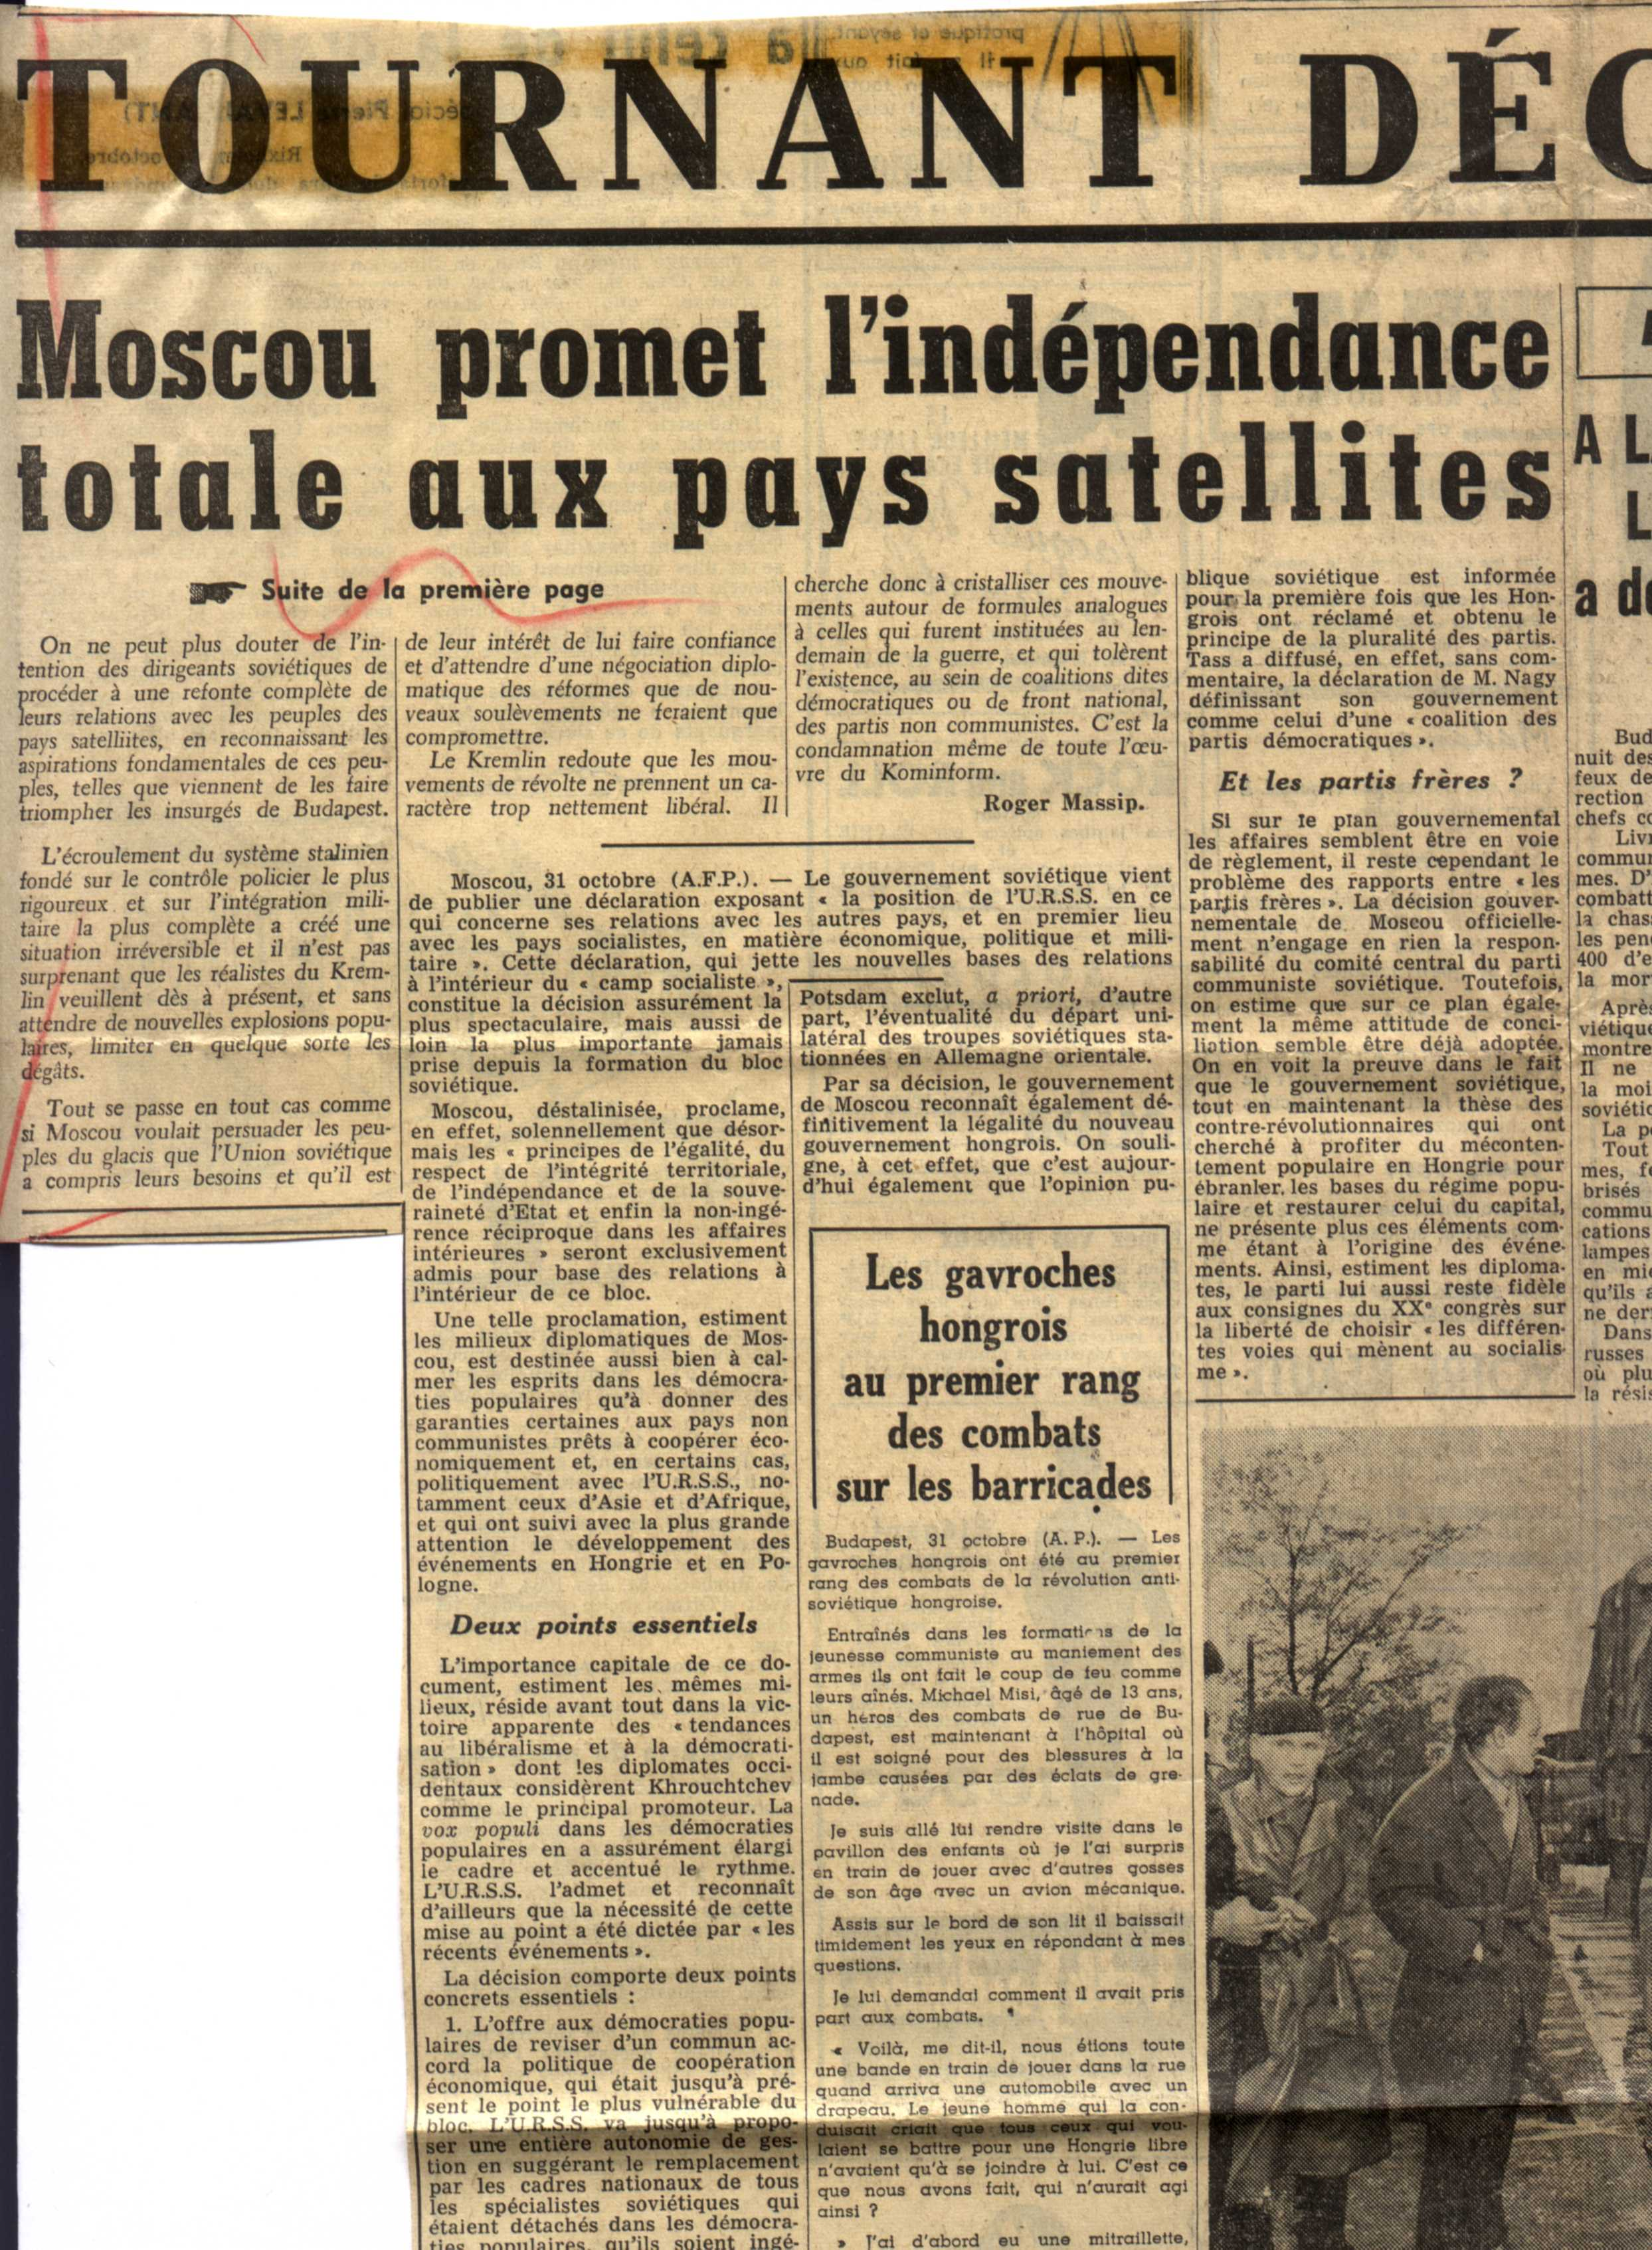 Hungary 1956  Crimea 2014? The New Archive (No  7) - Not